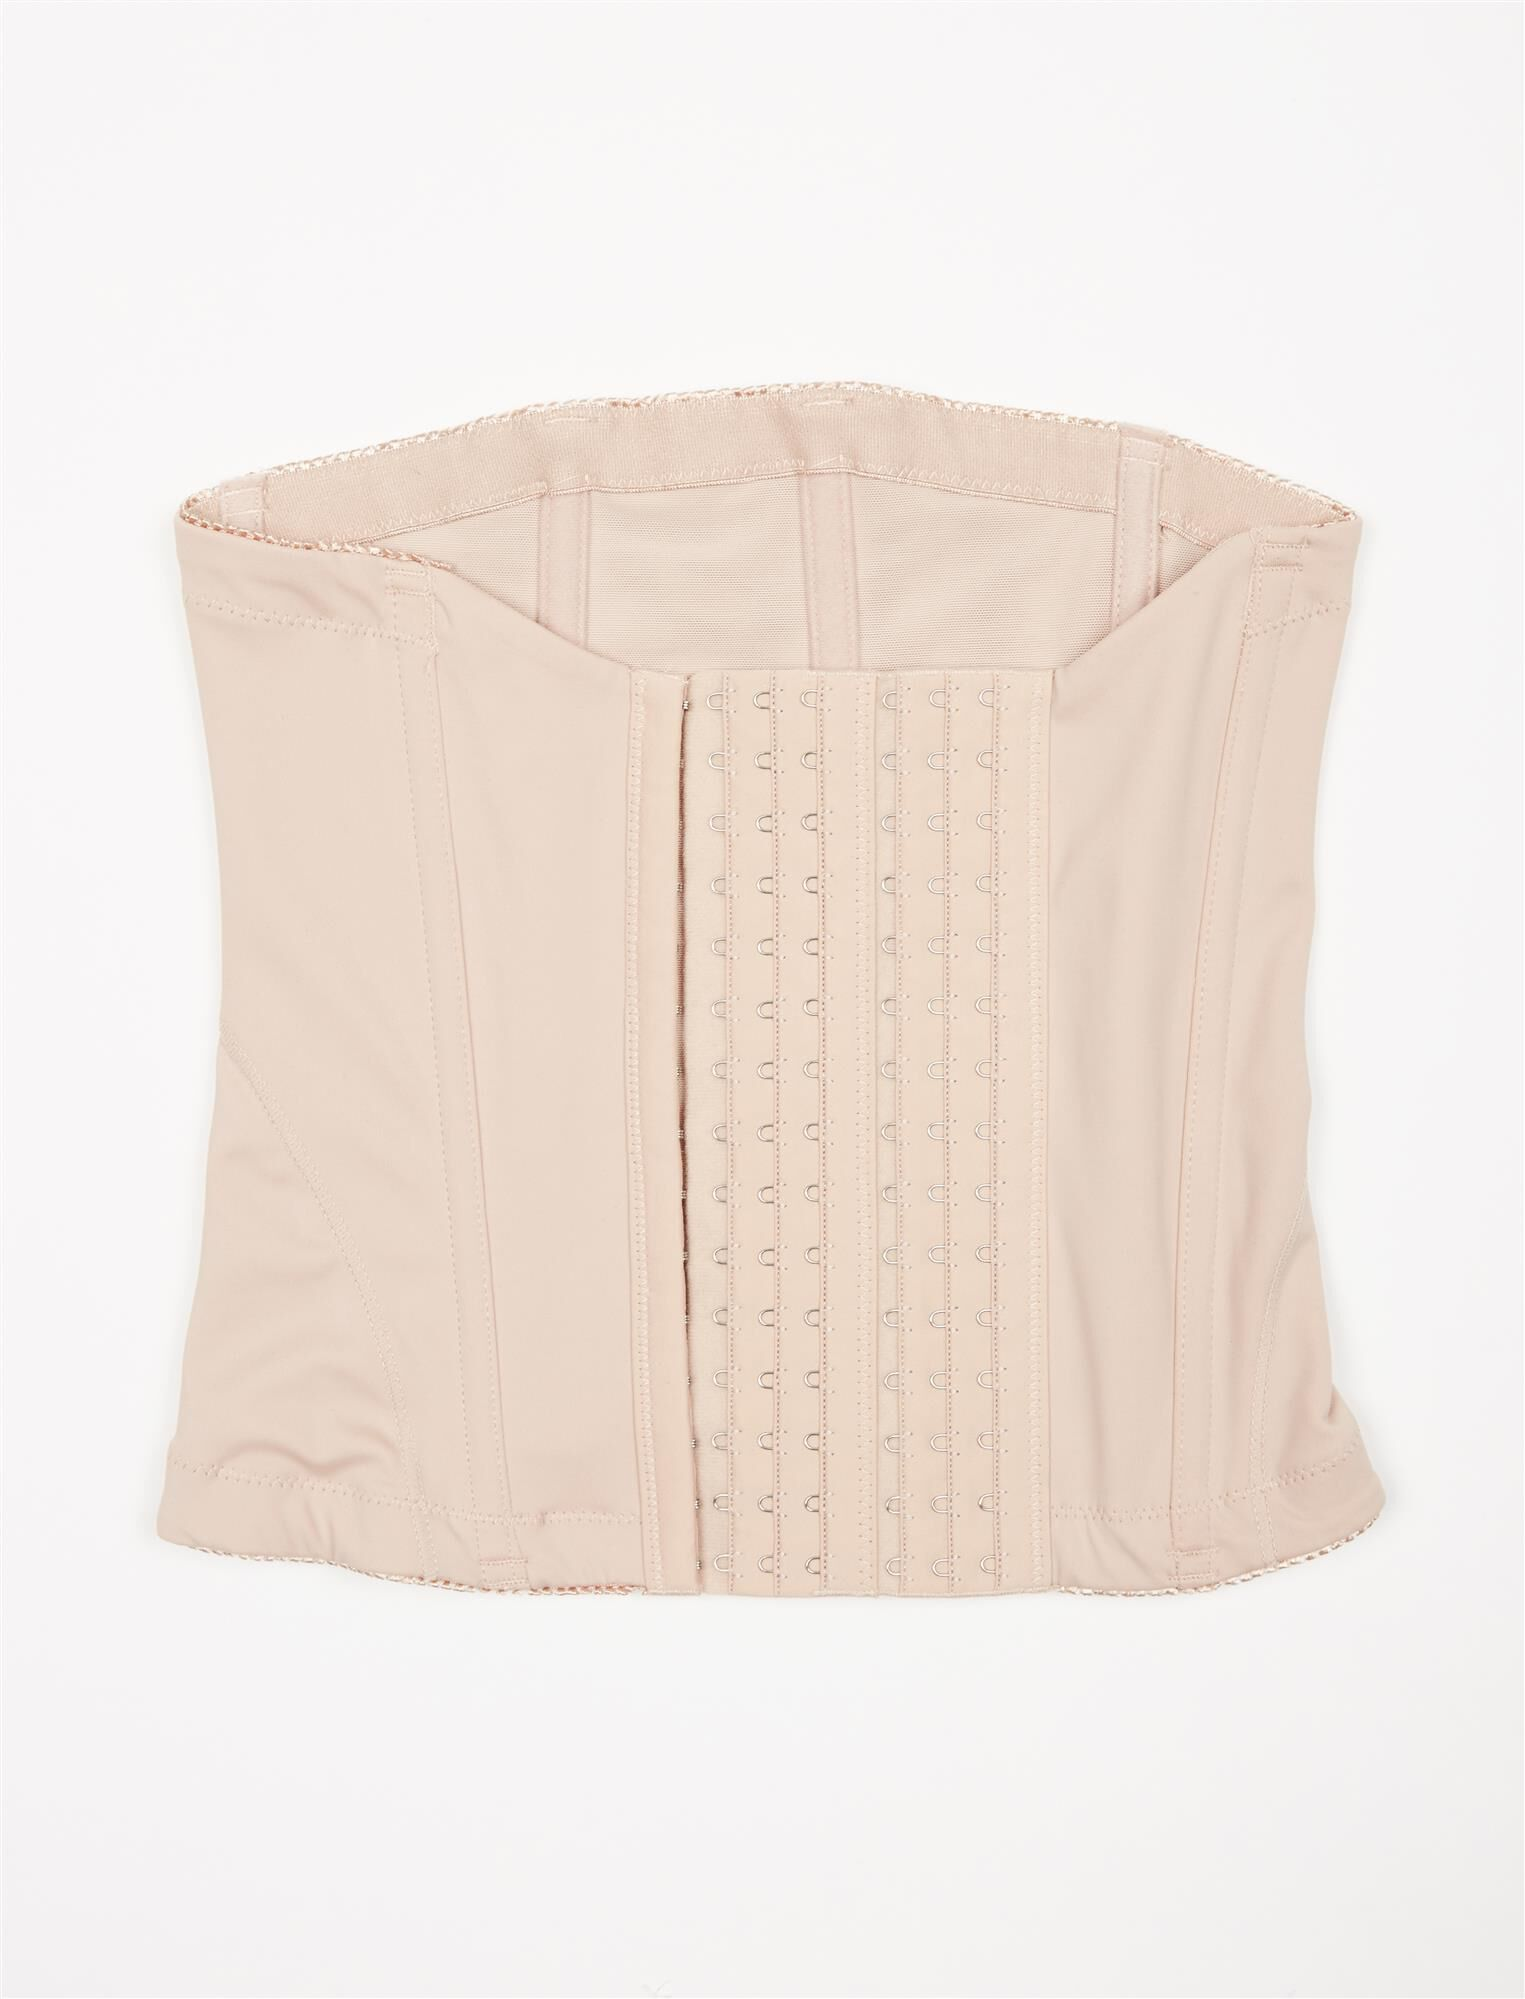 Belly Bandit Mother Tucker Corset